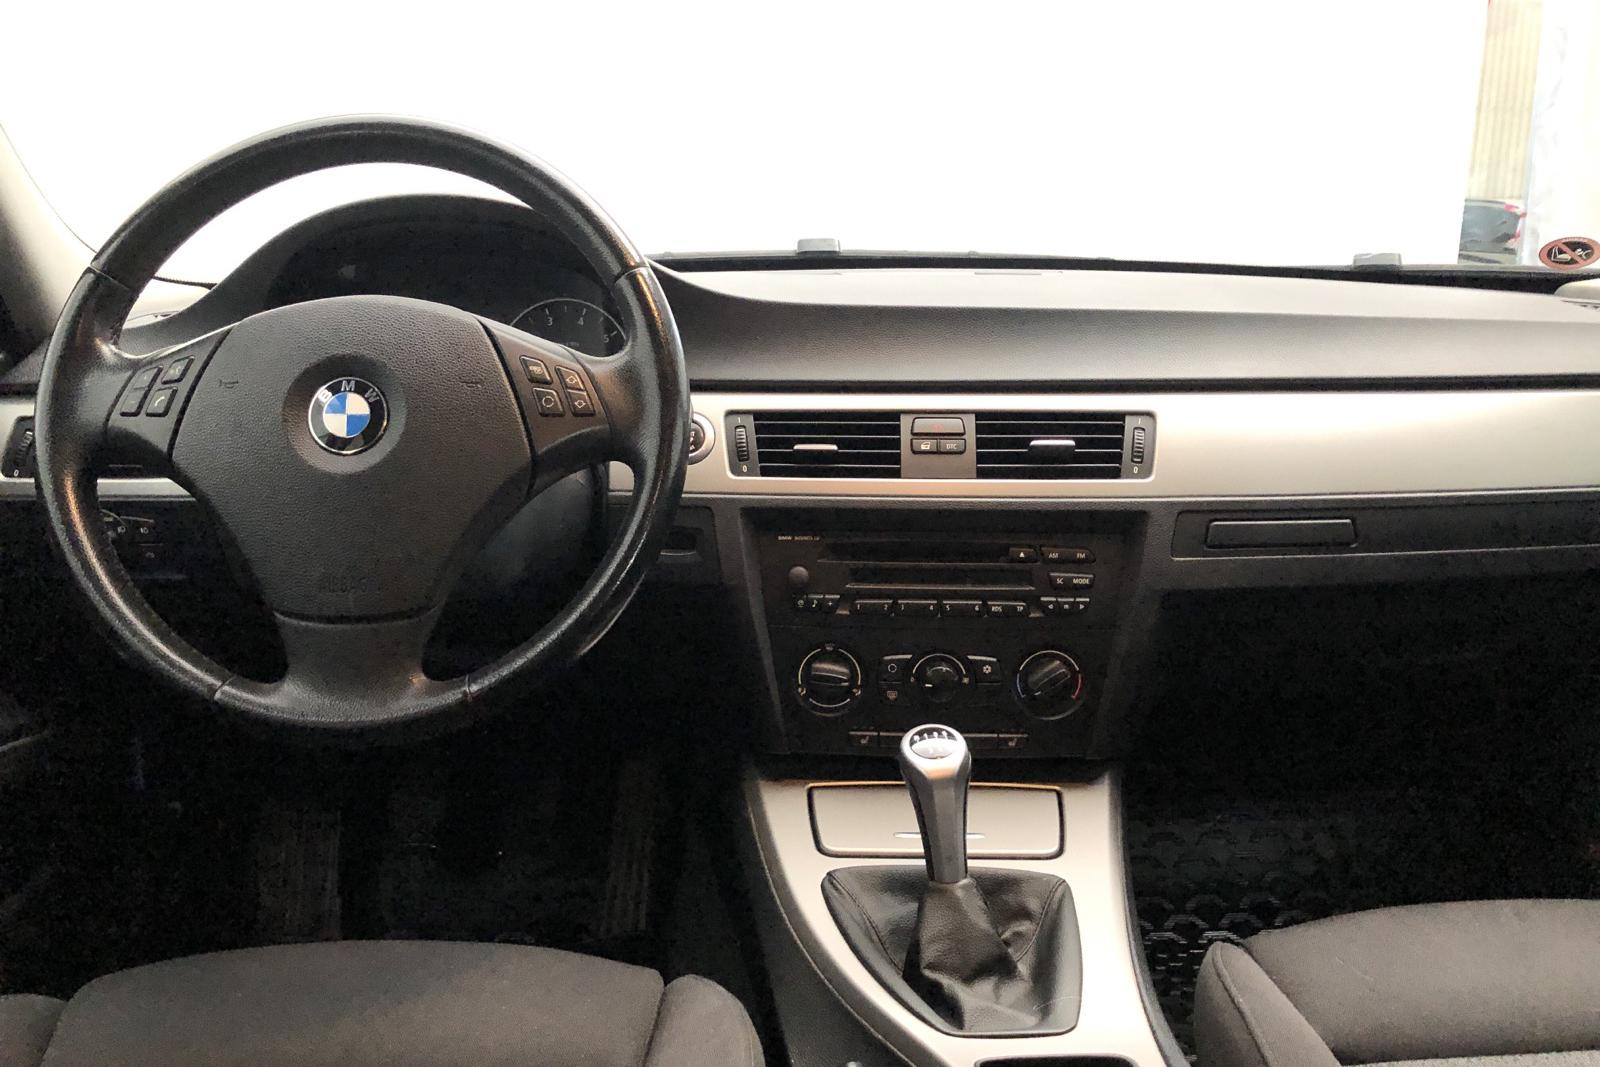 BMW 320i Touring, E91 (150hk) - 130 000 km - Manual - Light Grey - 2006